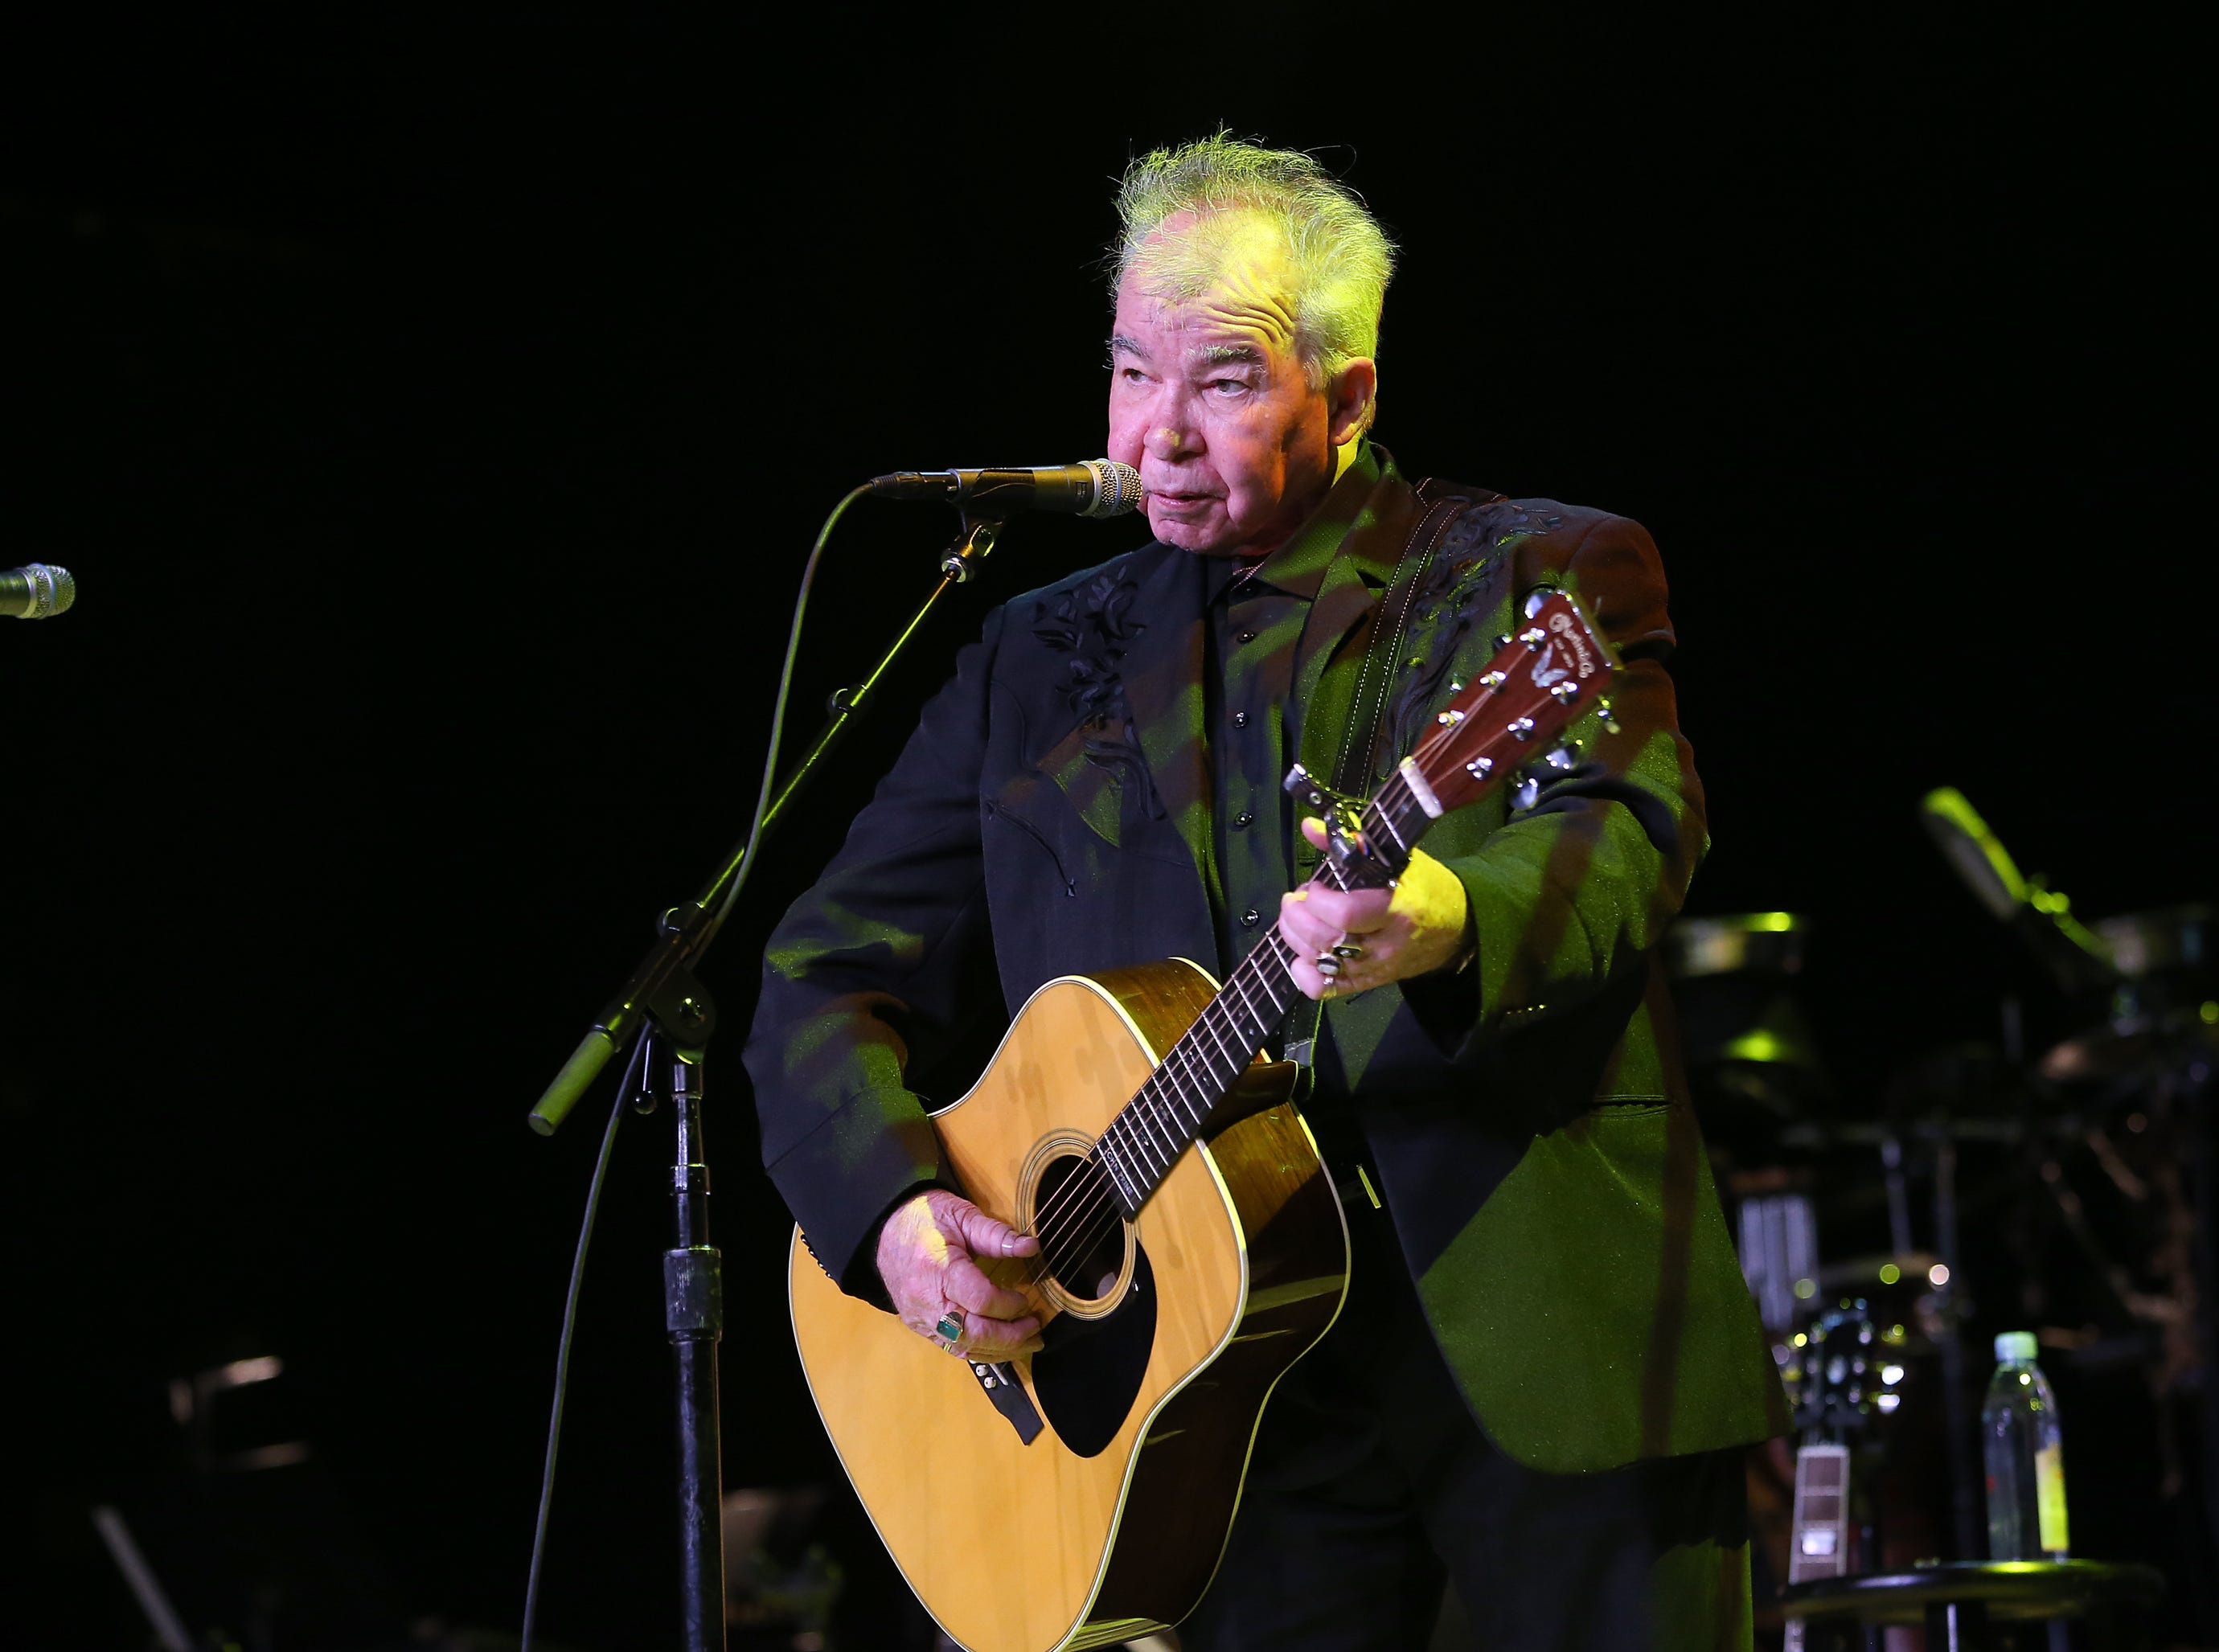 LOS ANGELES, CA - OCTOBER 19:  John Prine performs at 'Across The Great Divide' benefit concert presented by UpperWest Music Group at Ace Theater Downtown LA on October 19, 2018 in Los Angeles, California.  (Photo by Jesse Grant/Getty Images for Across the Great Divide) ORG XMIT: 775245173 ORIG FILE ID: 1052610084